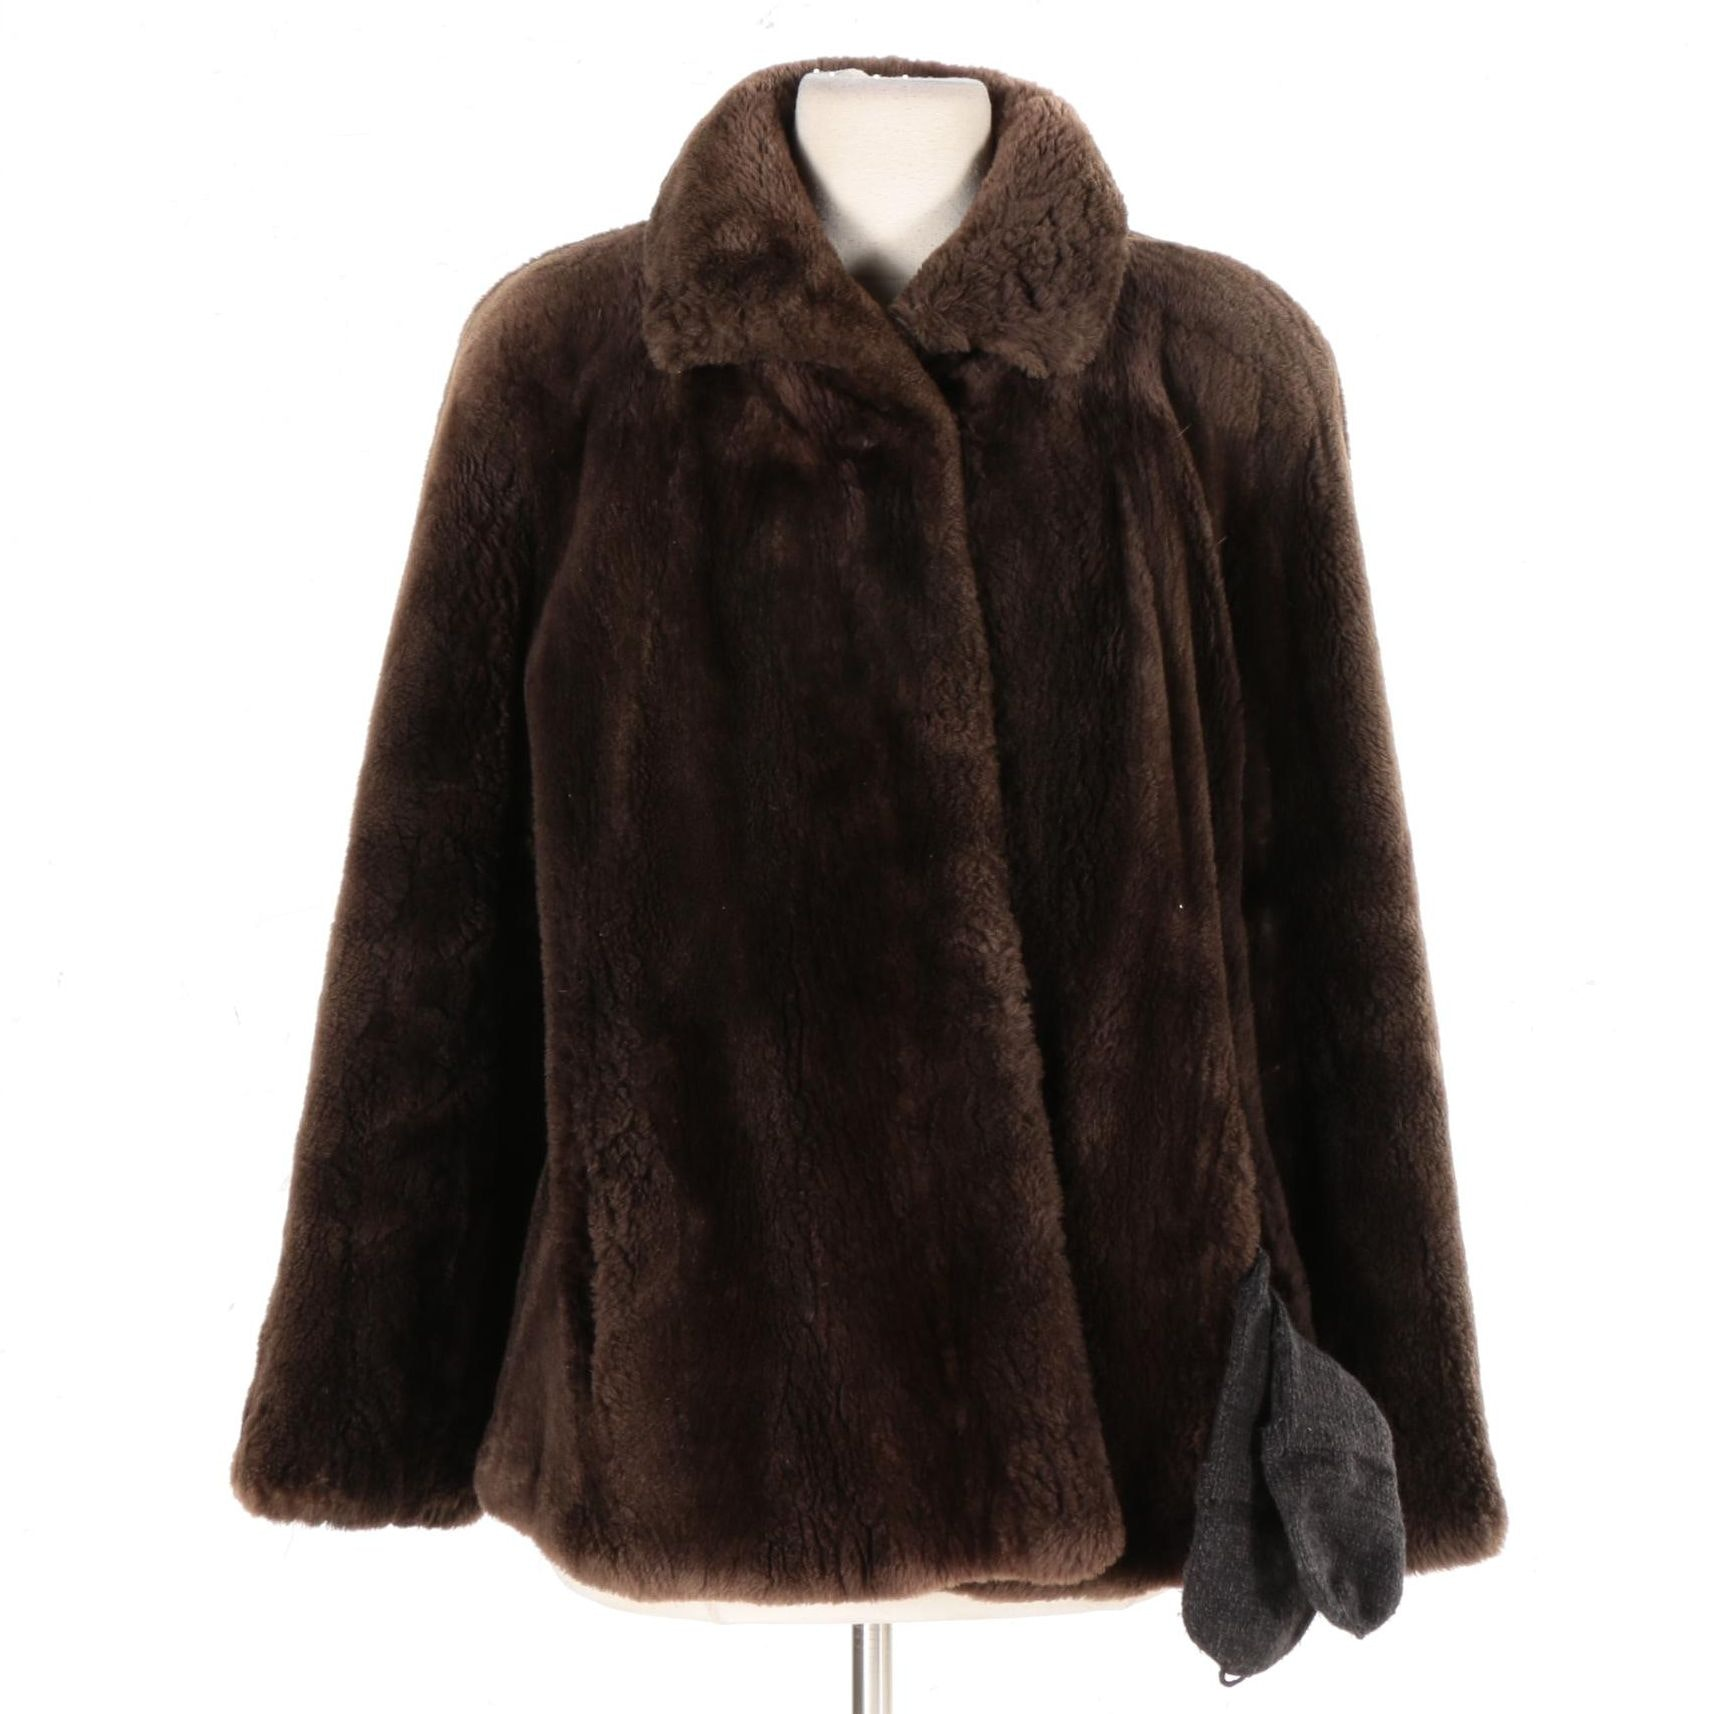 Sheared Beaver Fur Jacket From York Furs at Regenstein's